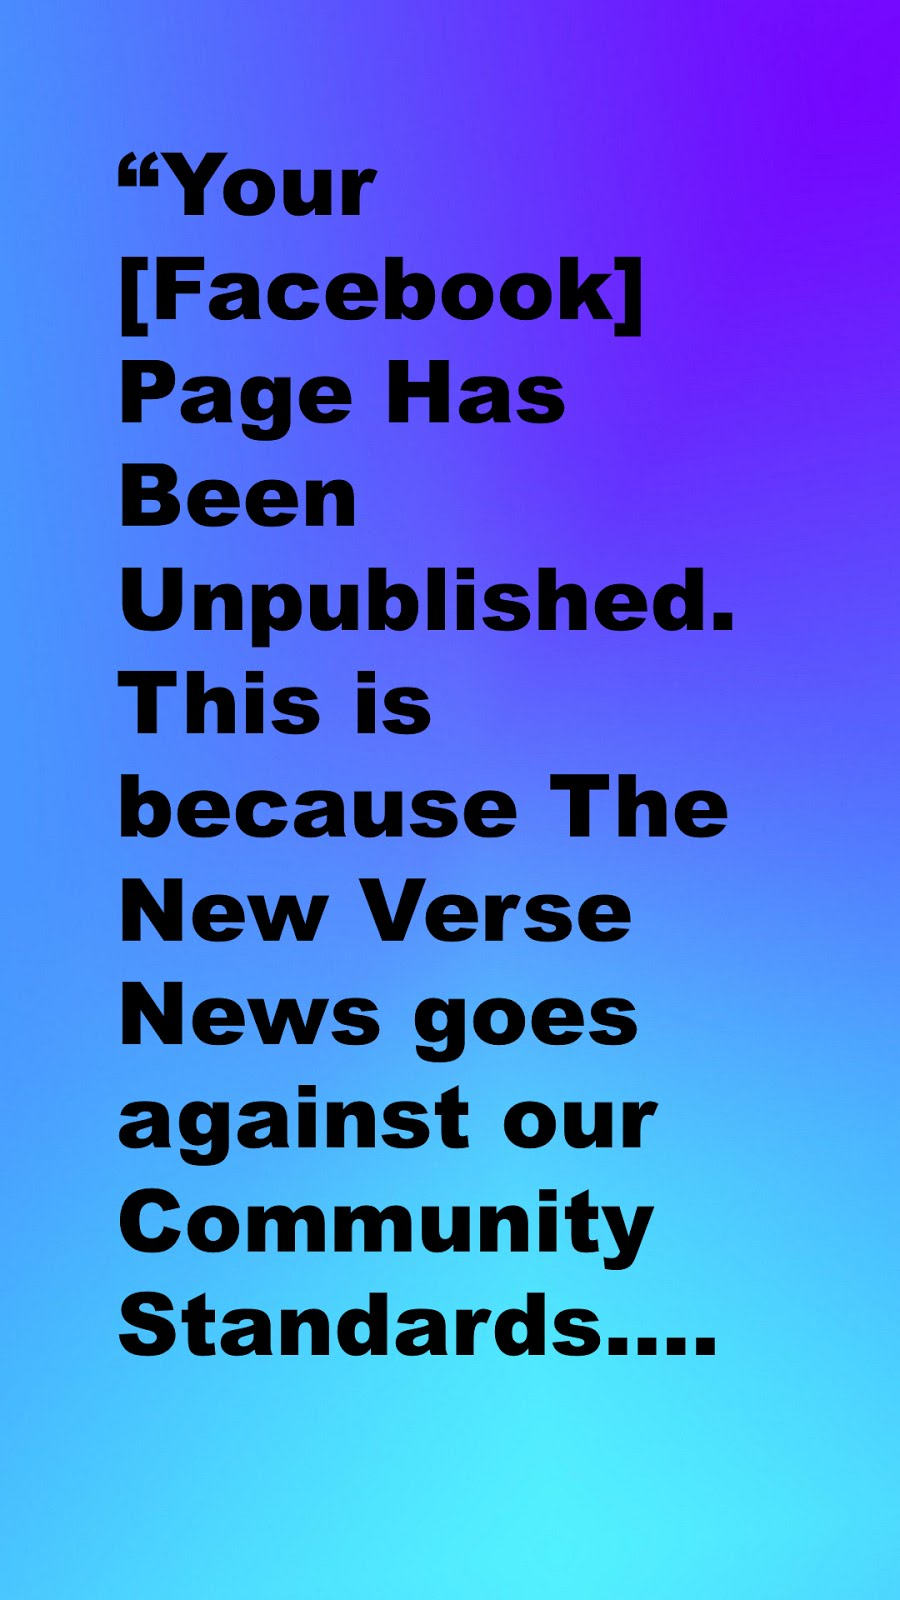 Message received at The New Verse News from Facebook